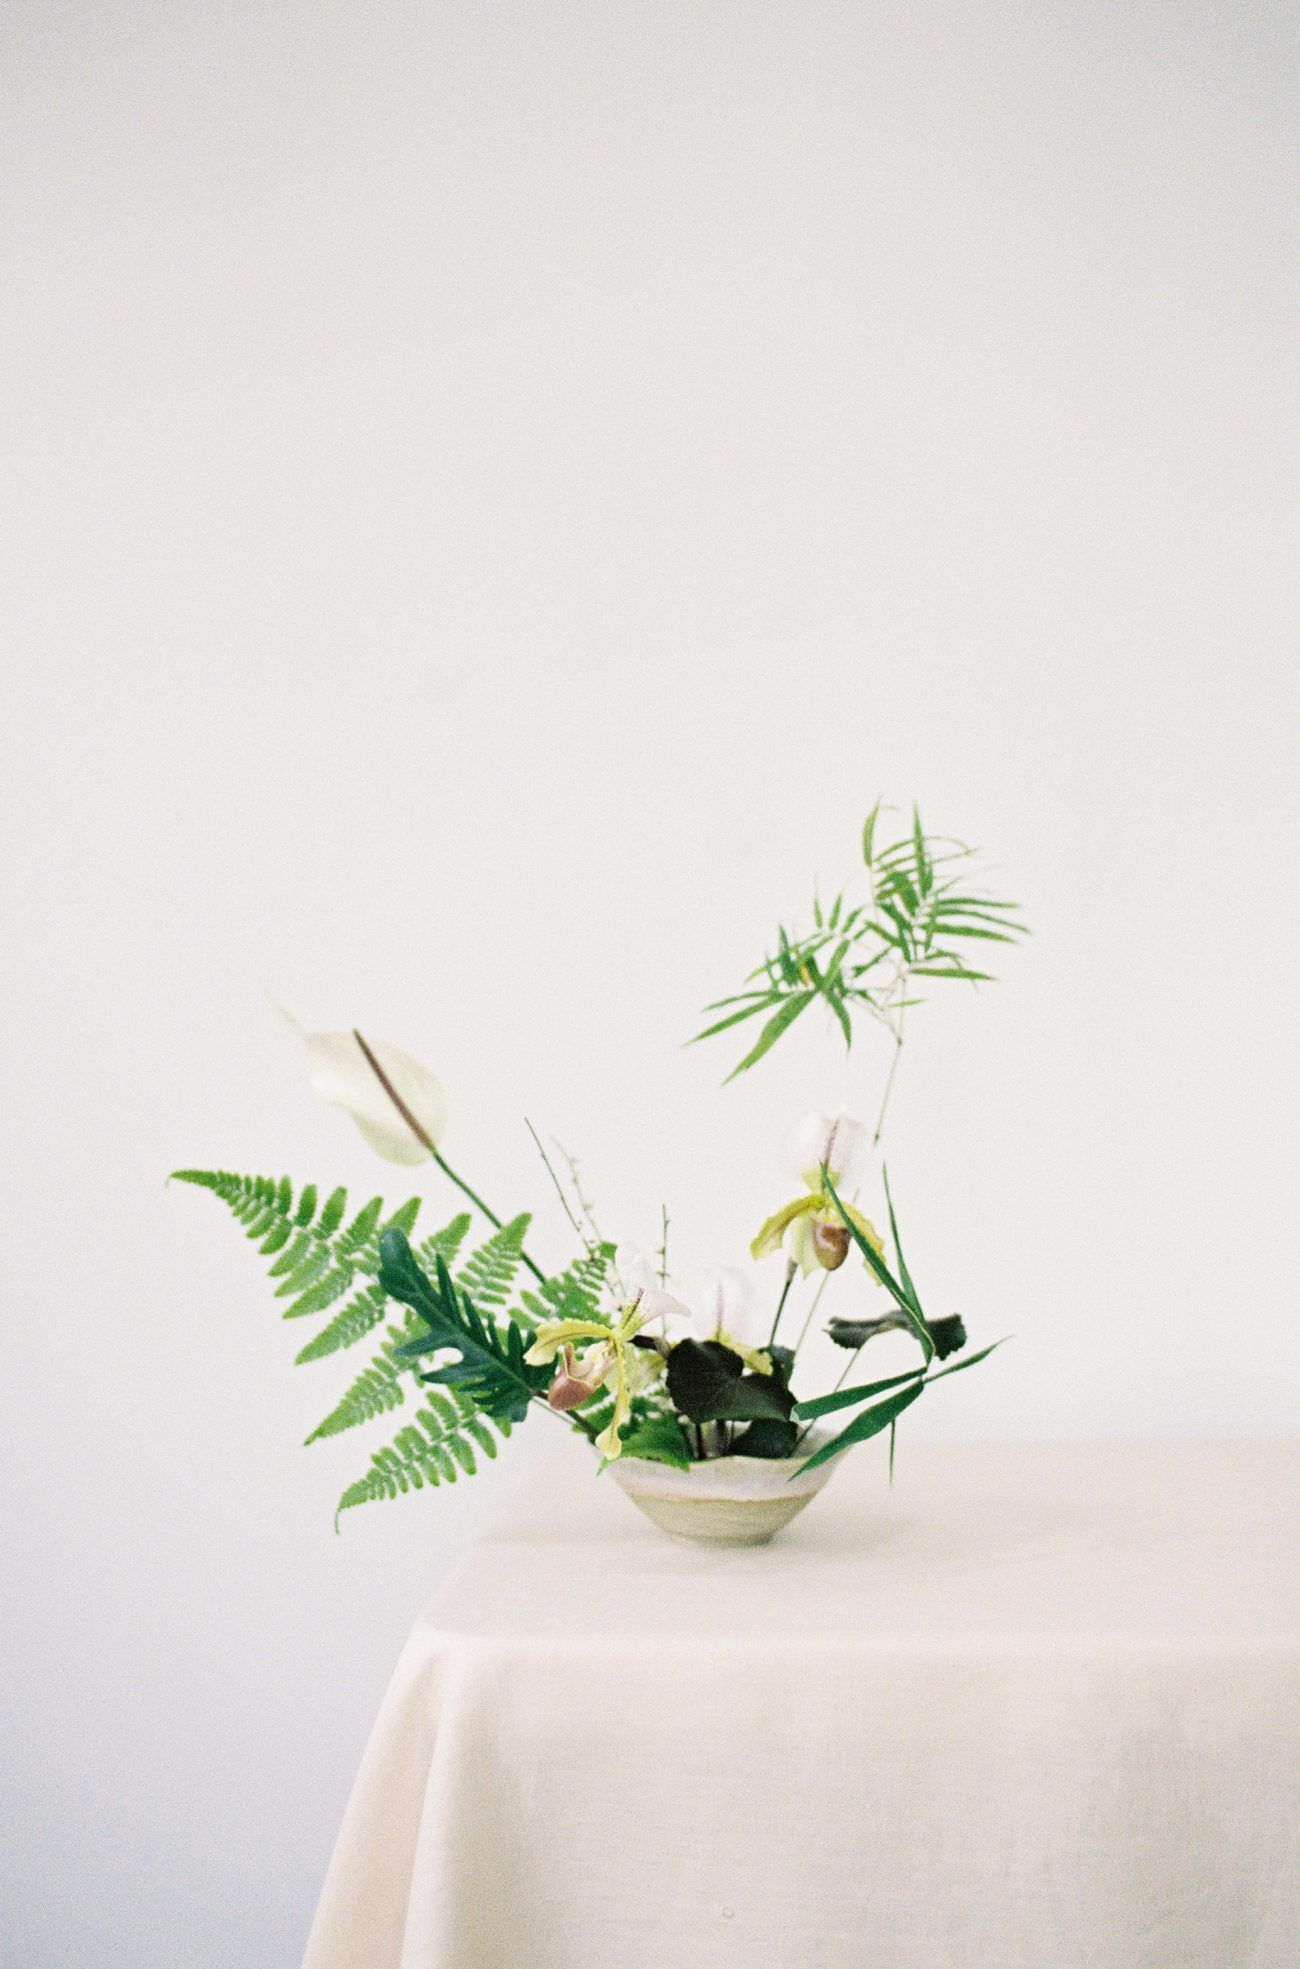 199Singapore Tropical Ikebana Editorial Photography